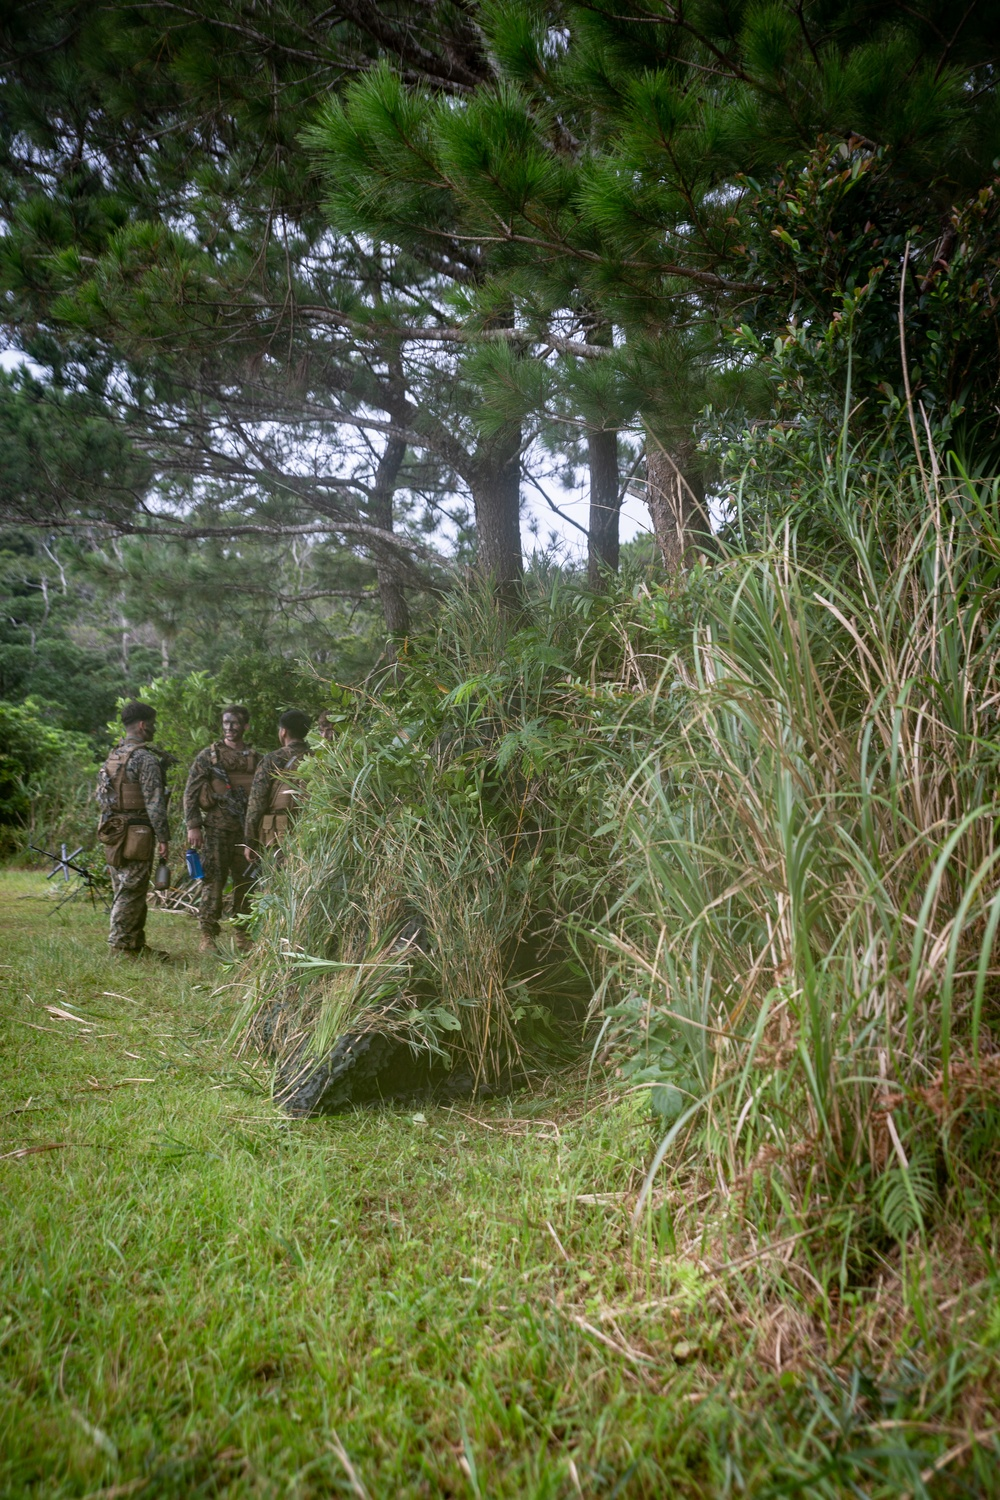 Marines with Kilo Company BLT 3/5 camouflage a COC